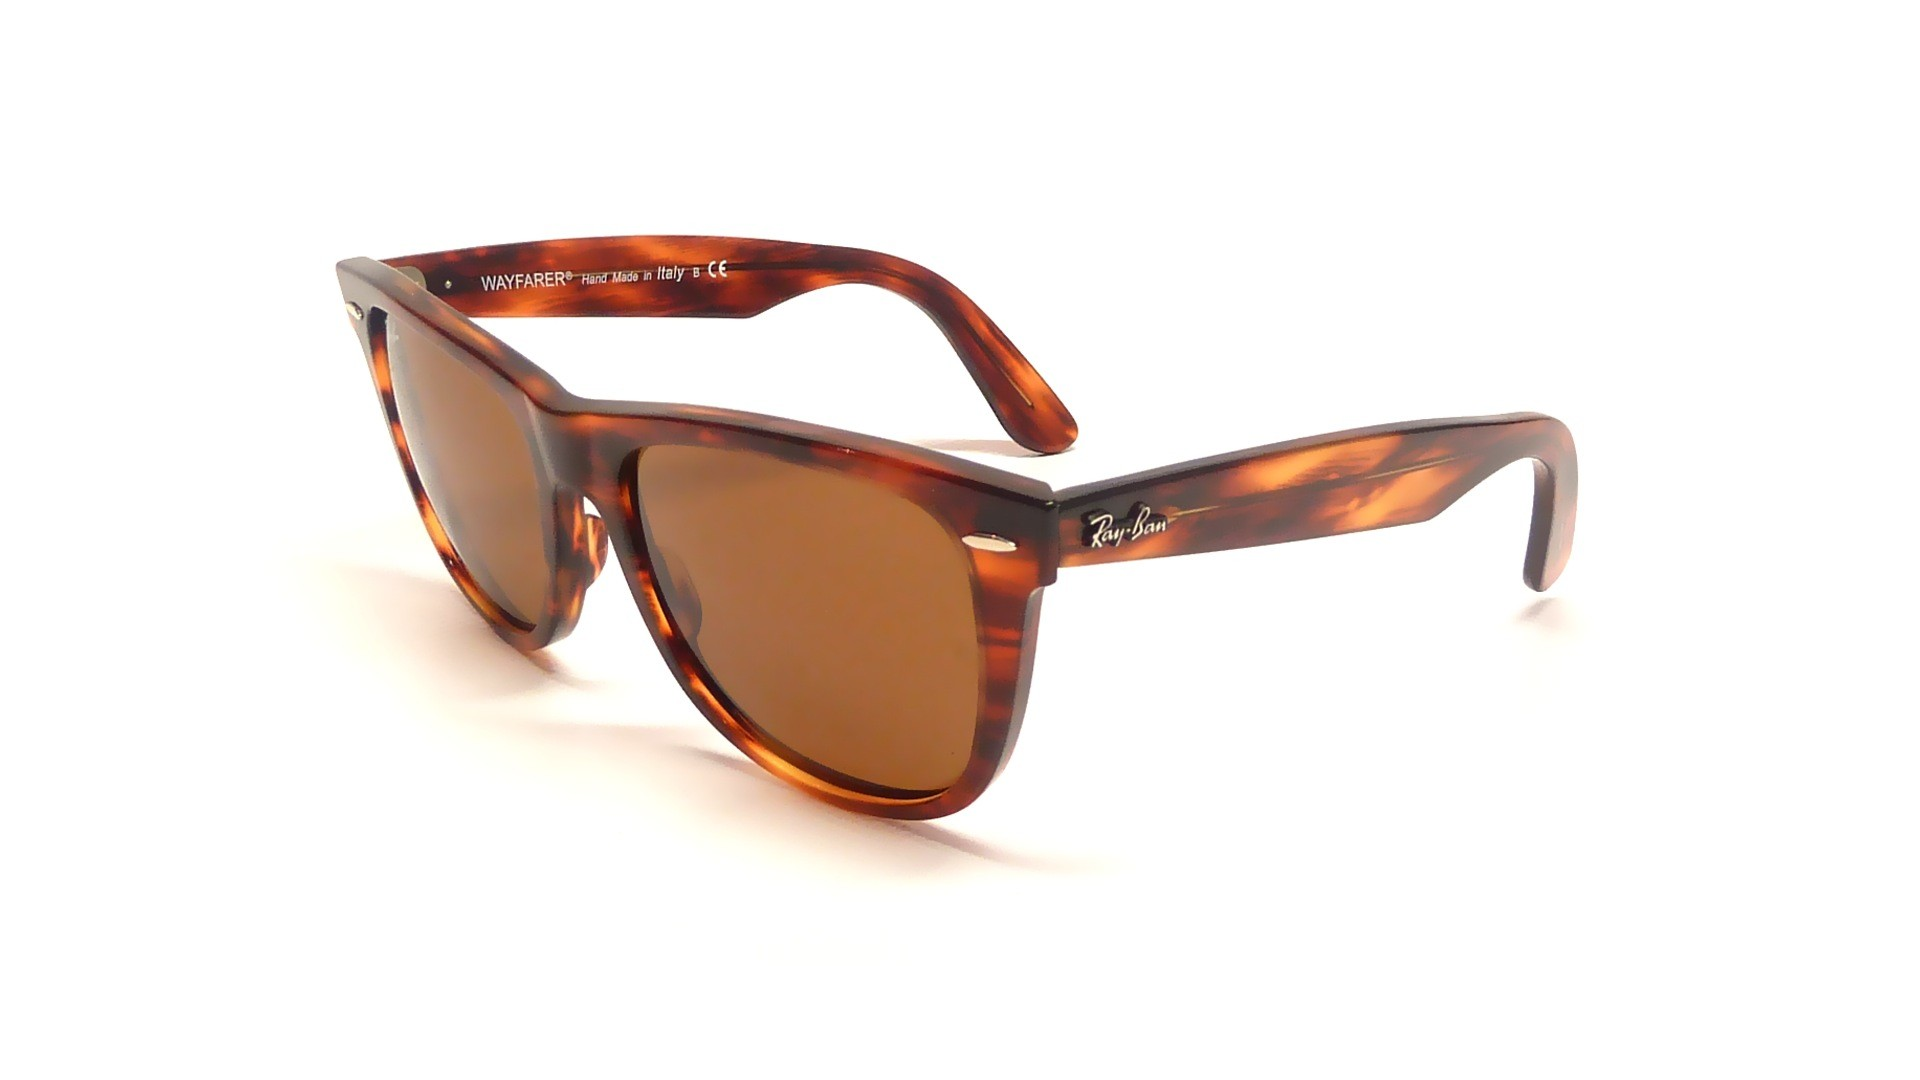 ray ban wayfarer 2140 best price